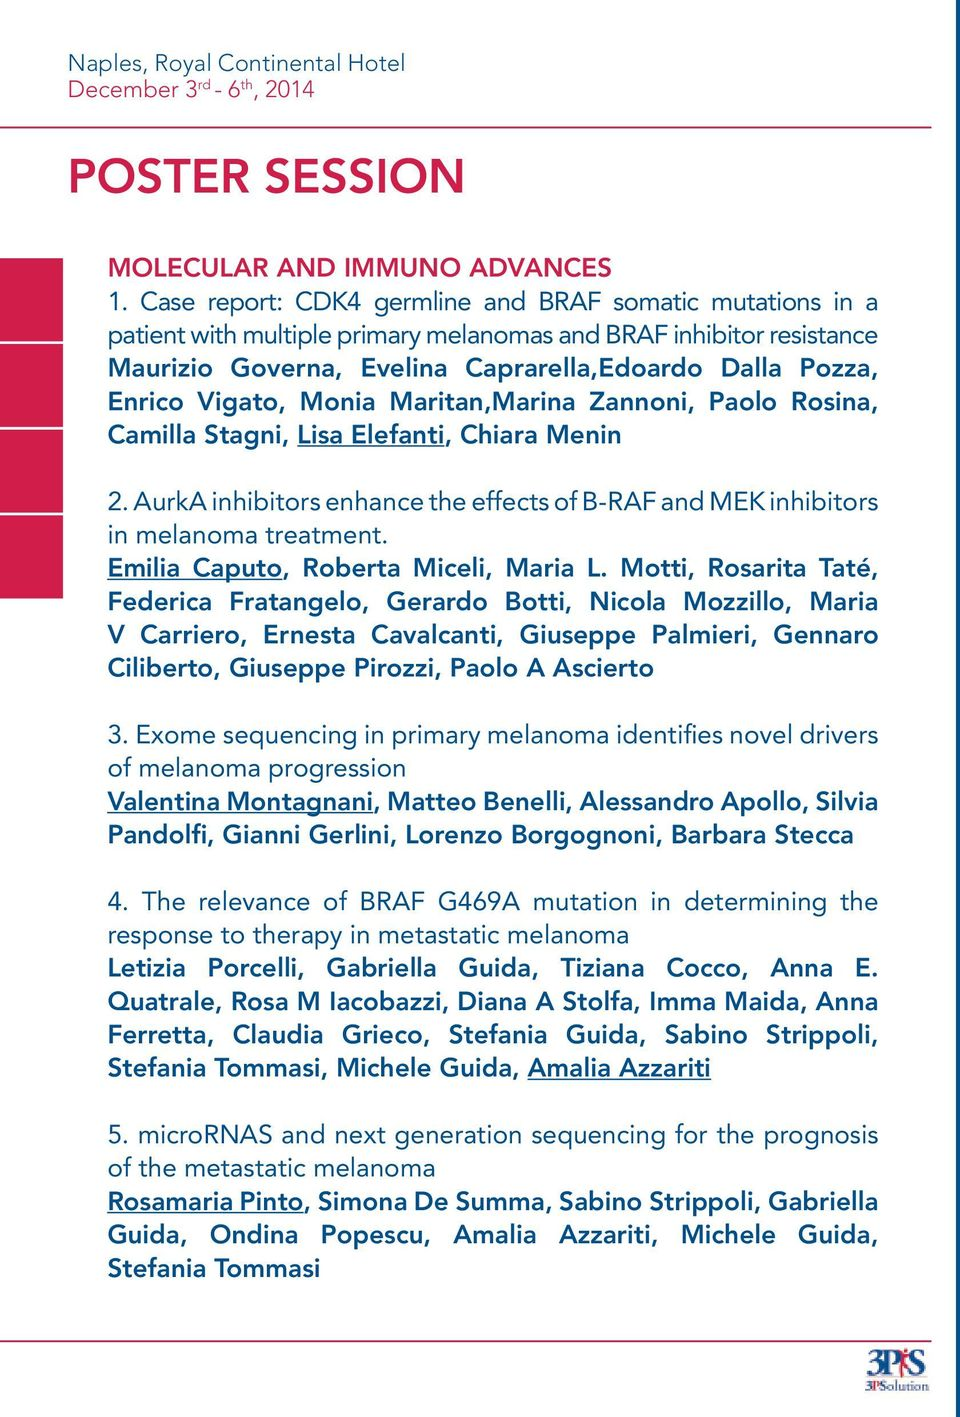 Vigato, Monia Maritan,Marina Zannoni, Paolo Rosina, Camilla Stagni, Lisa Elefanti, Chiara Menin 2. AurkA inhibitors enhance the effects of B-RAF and MEK inhibitors in melanoma treatment.